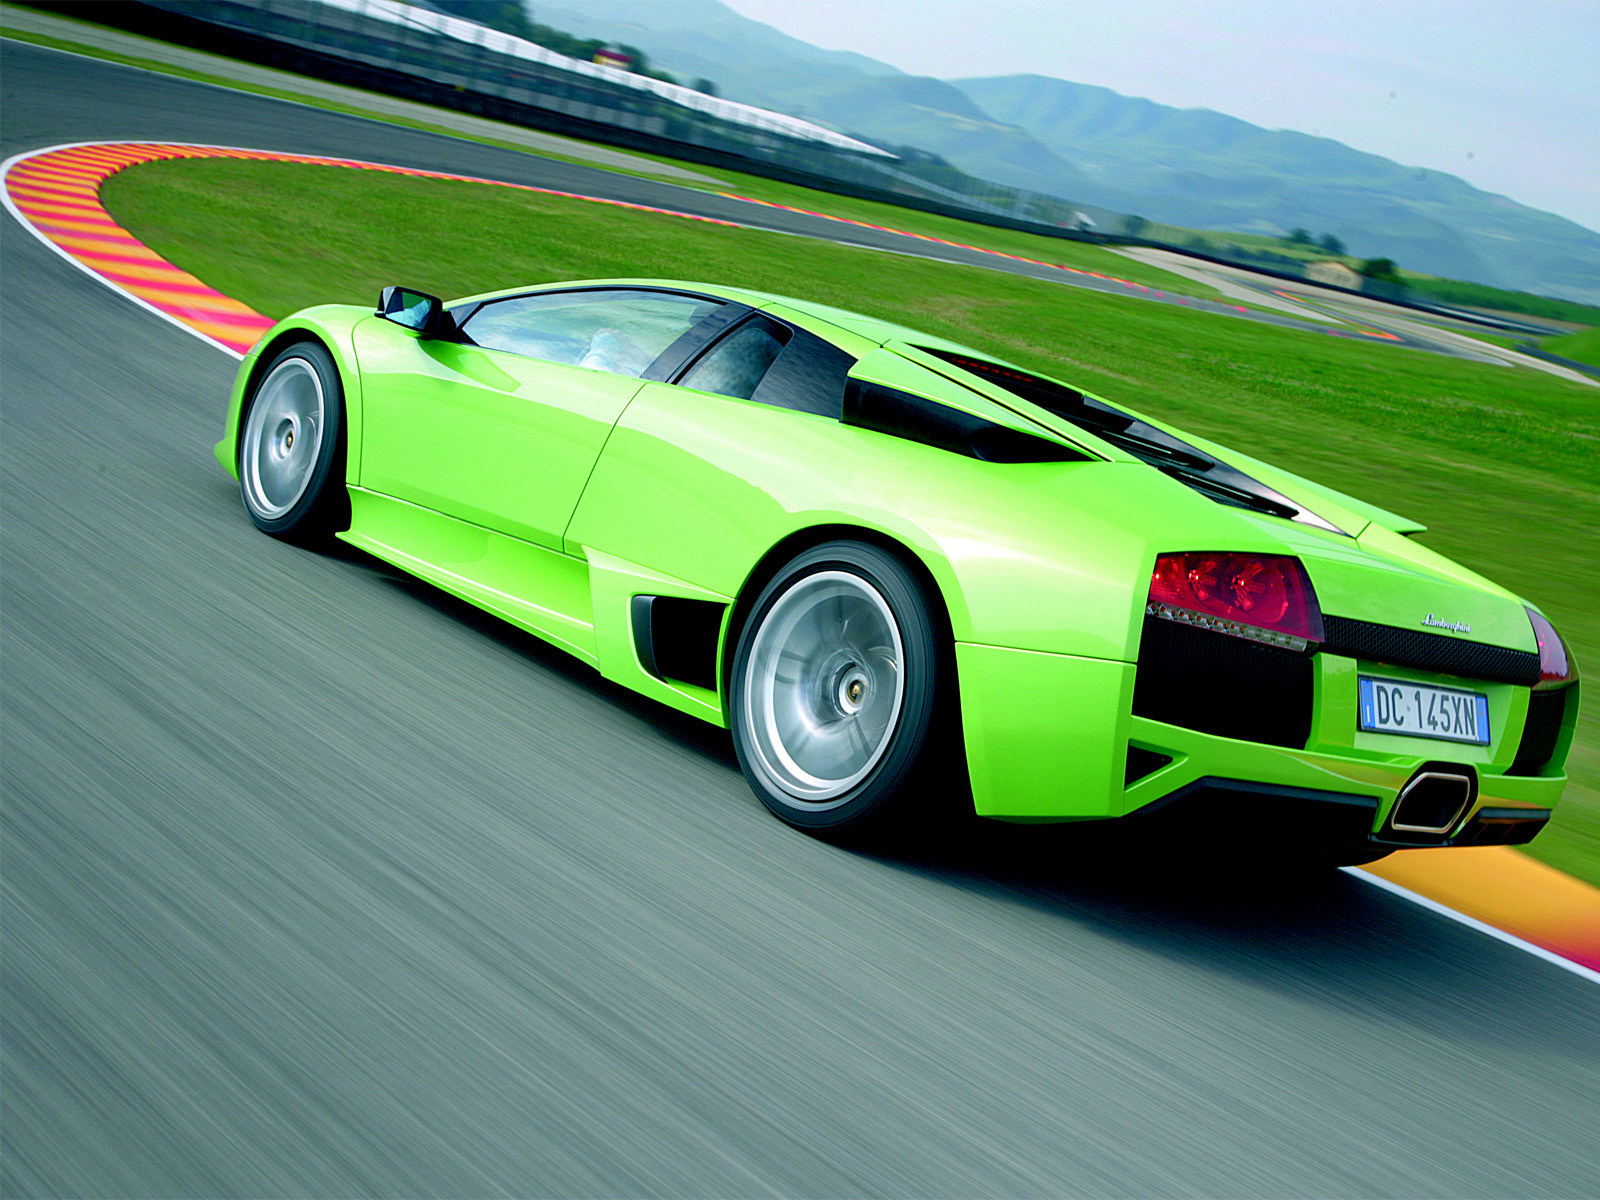 Cool car wallpaper high definition 4409